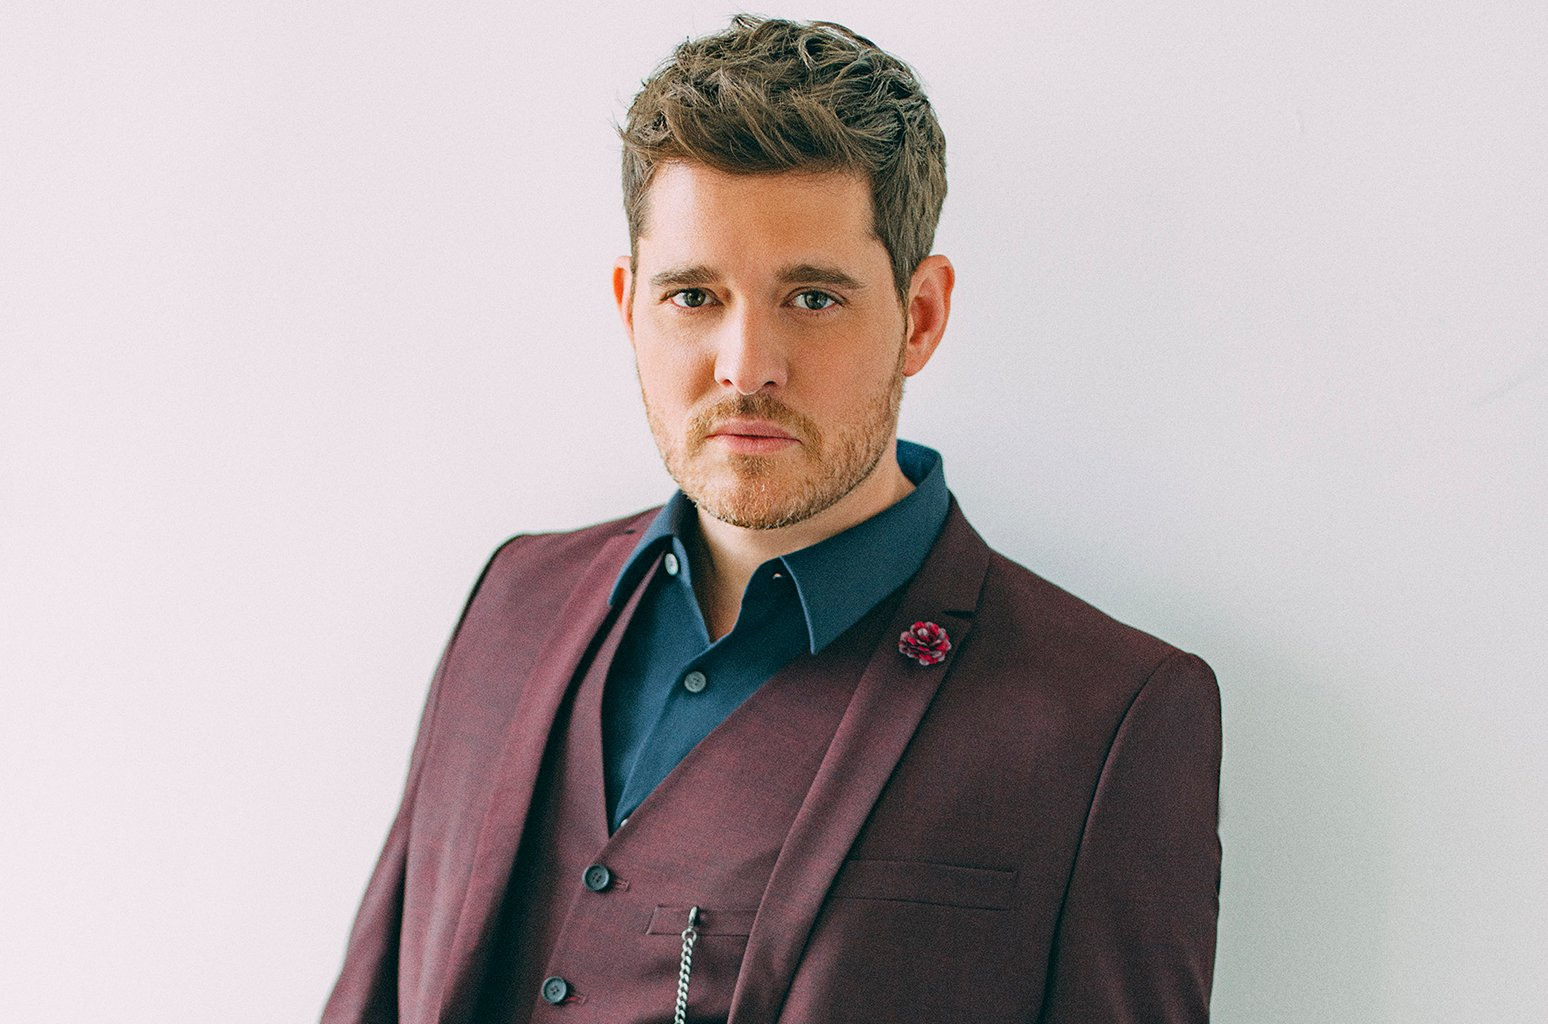 Michael Buble shuts down rumors of retirement from music https://t.co/W4sLfyLSZu https://t.co/8ocQm7k6l2